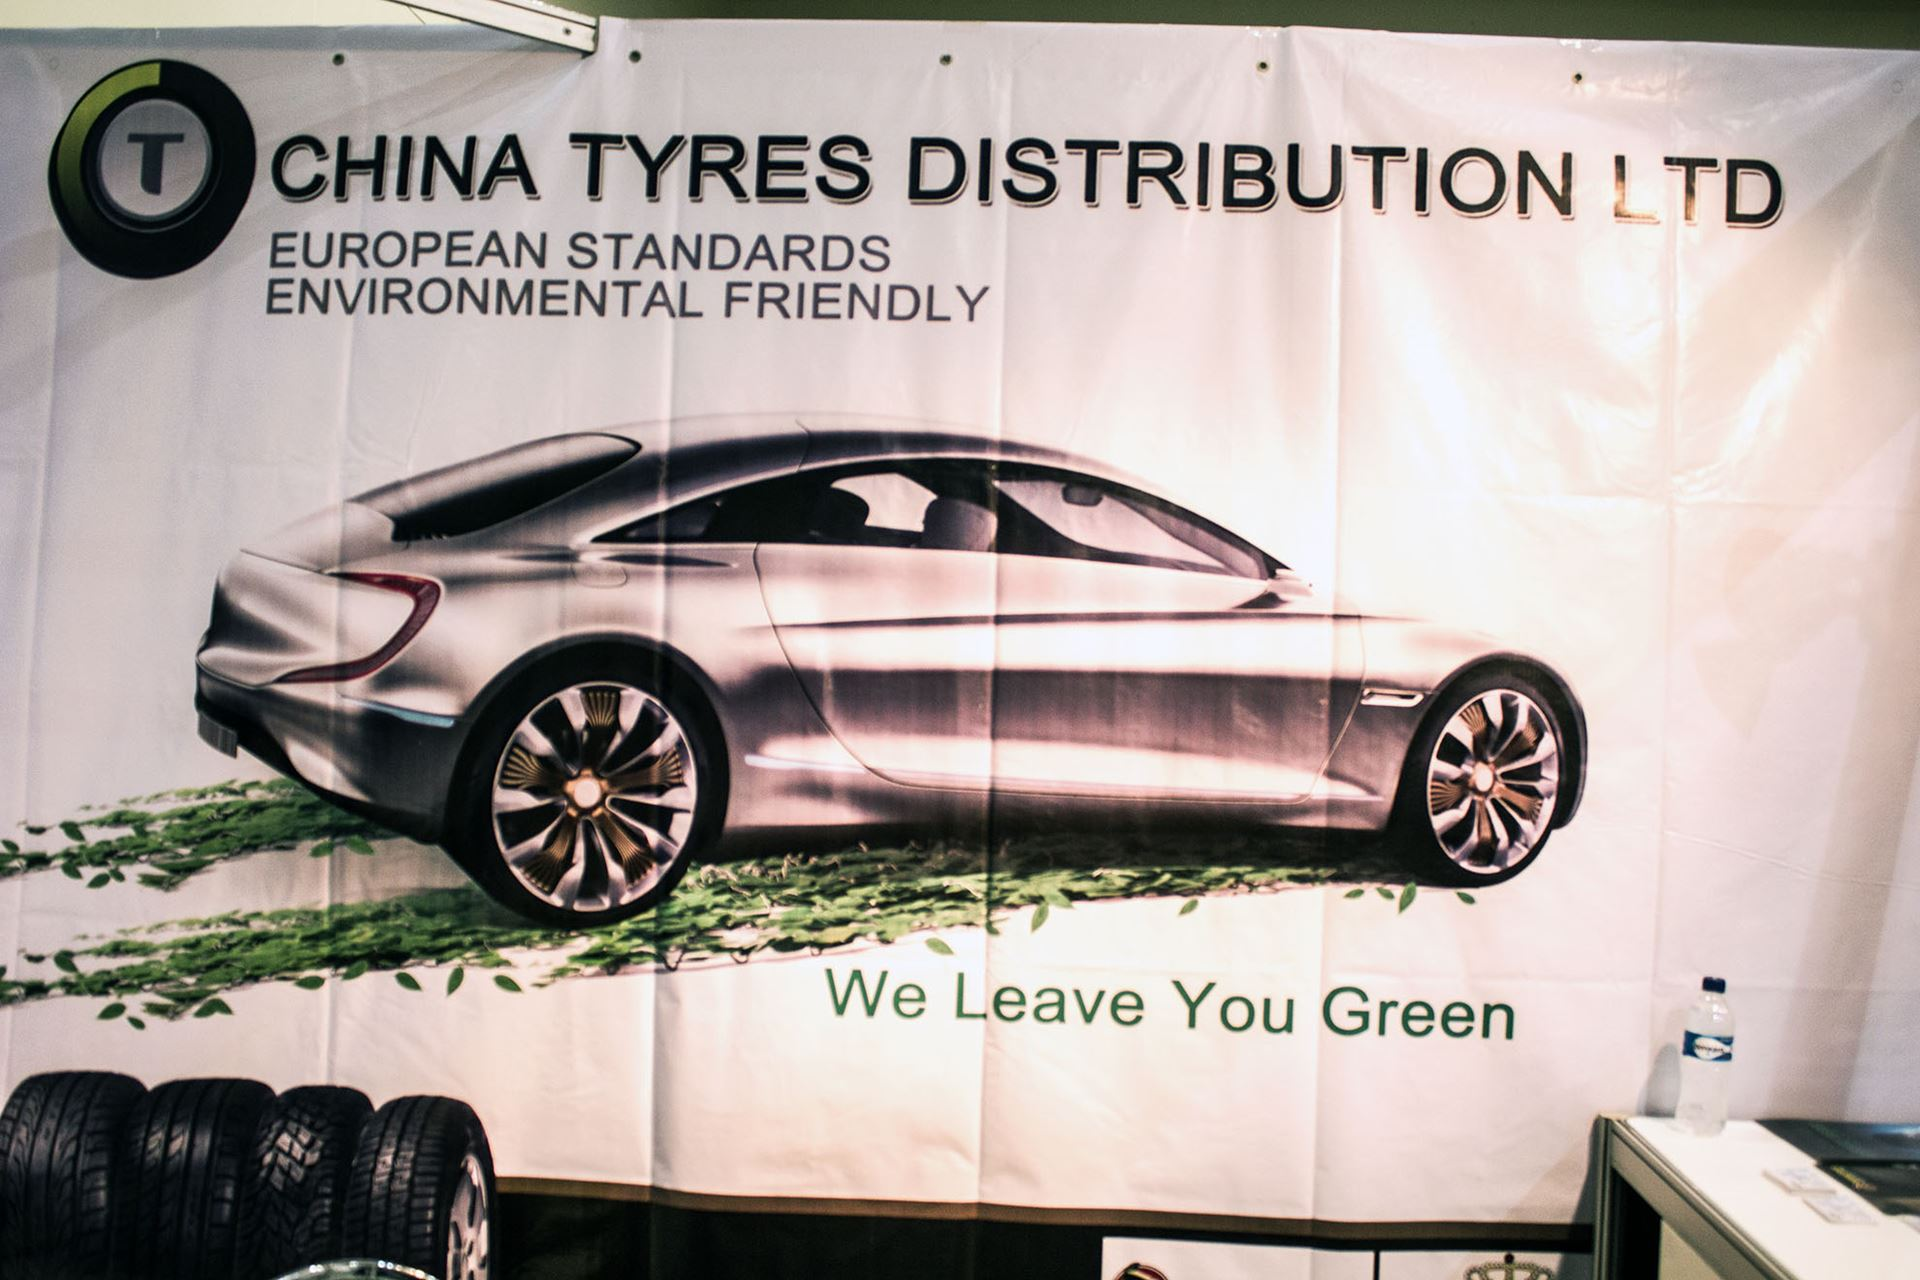 Tyre-Expo-South-Africa-2014-China-Tyres-01